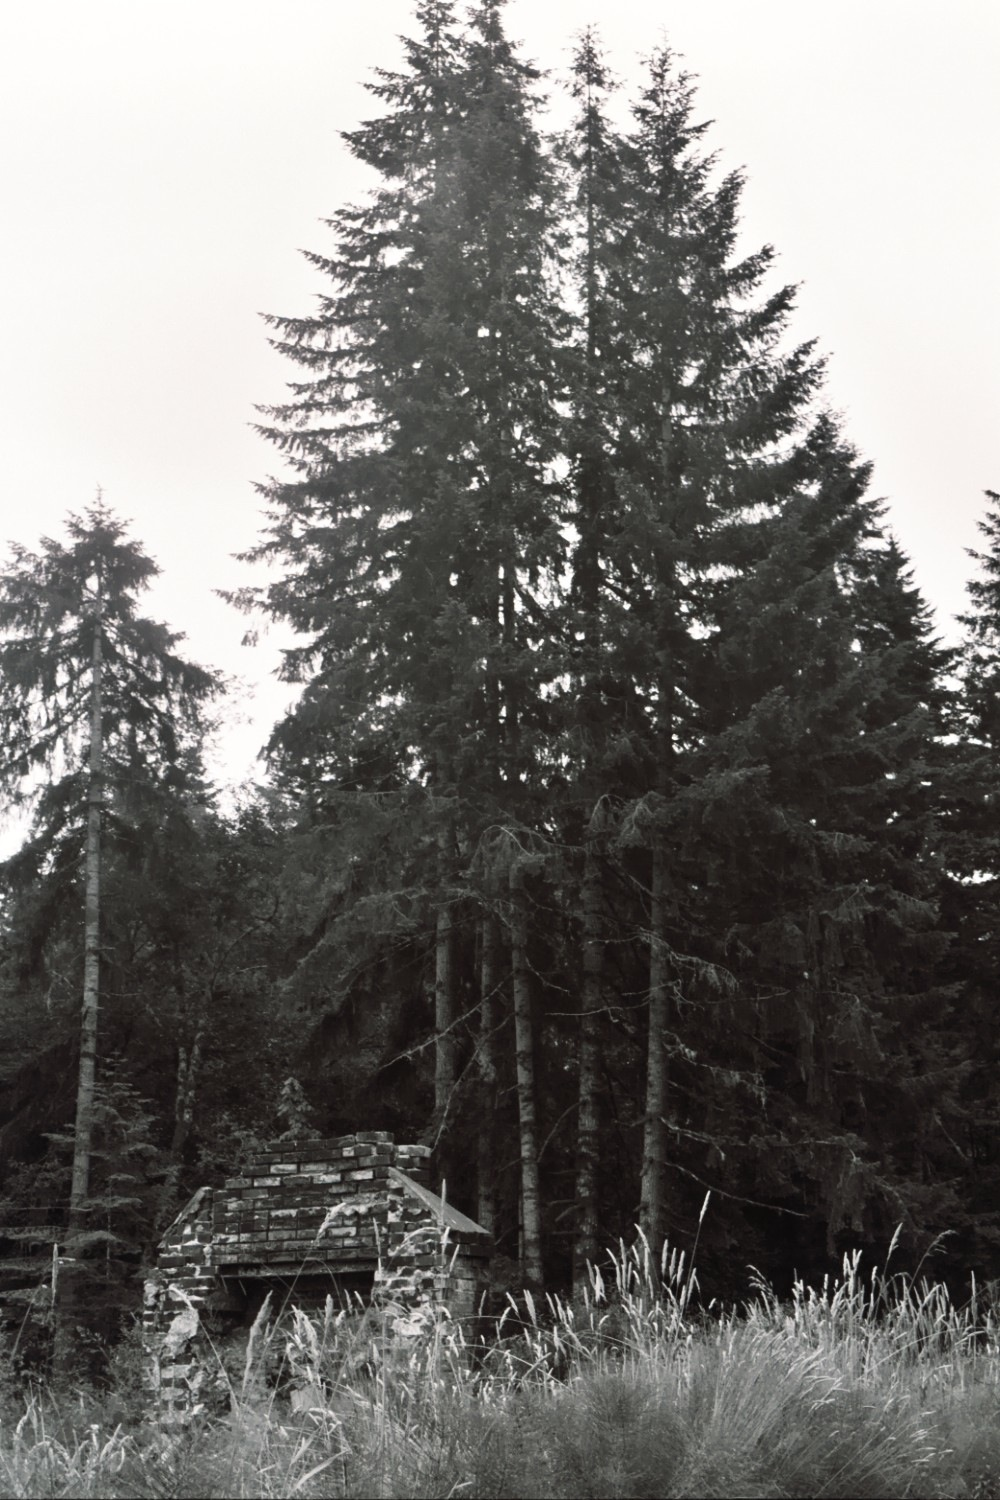 Through the pines